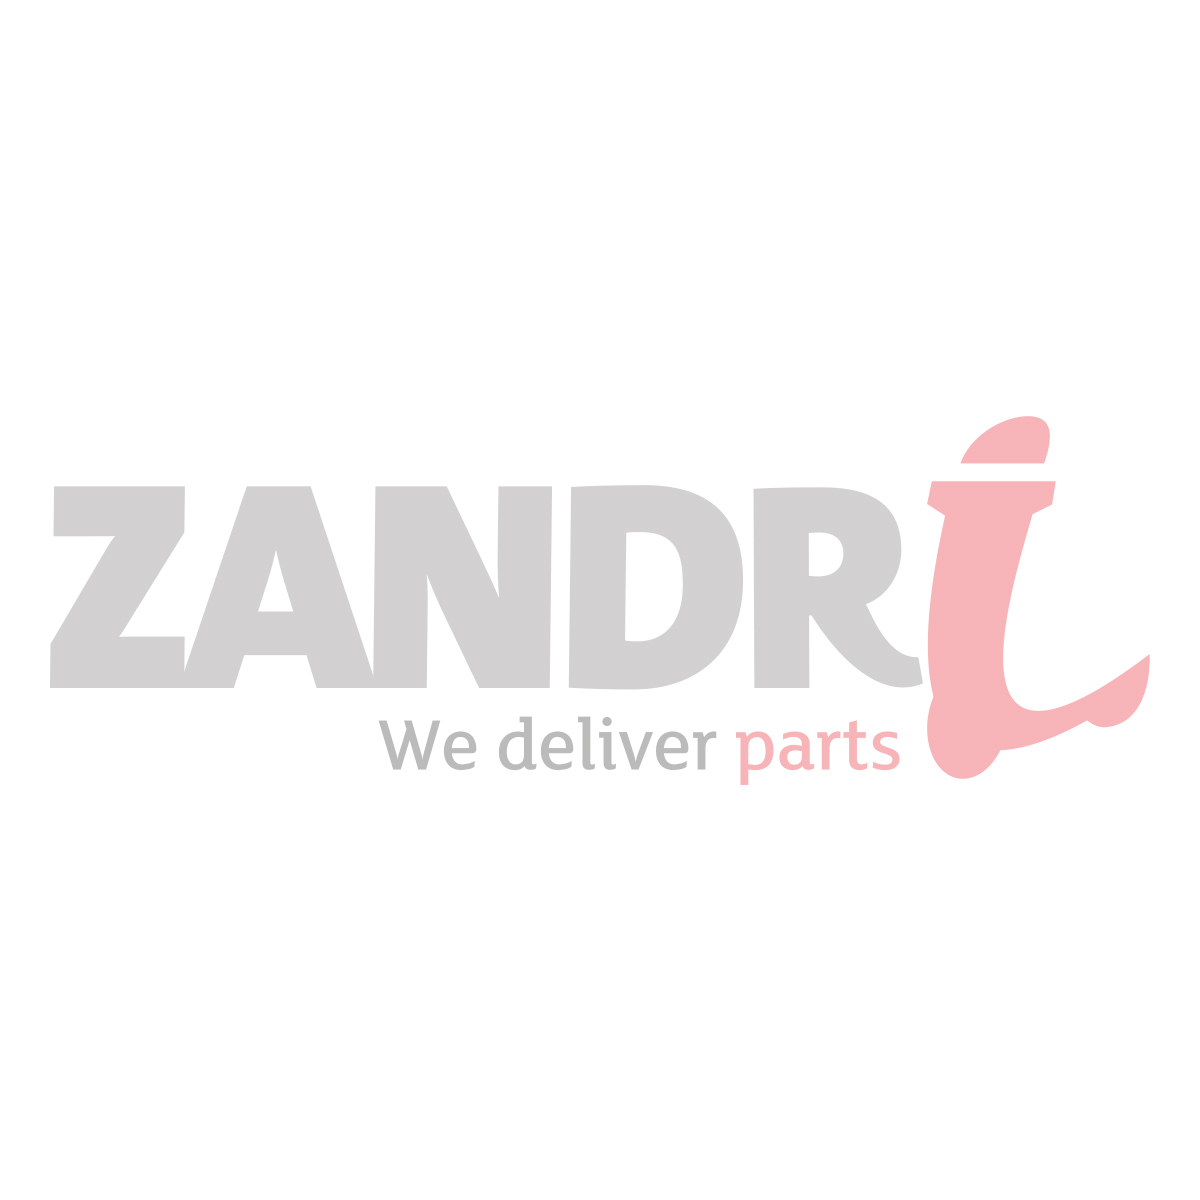 Eindoverbrenging - Carter Kymco B&W LC 2-takt zilver